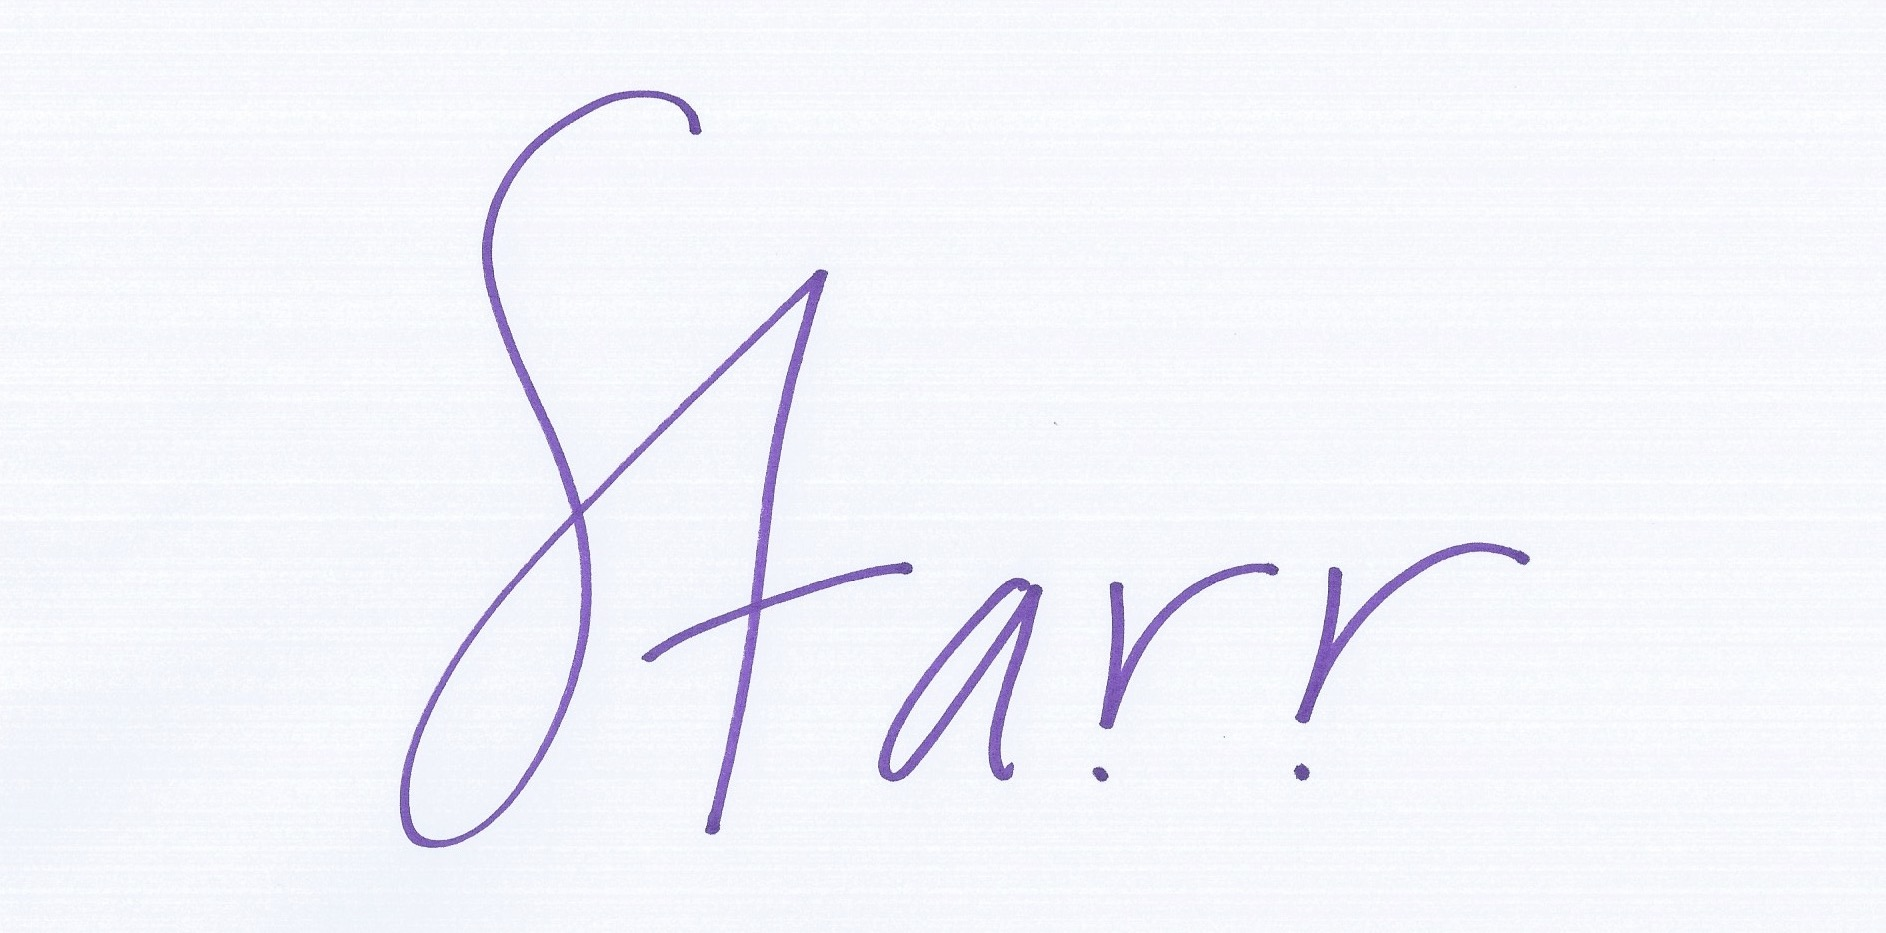 Starr Lowe's Signature